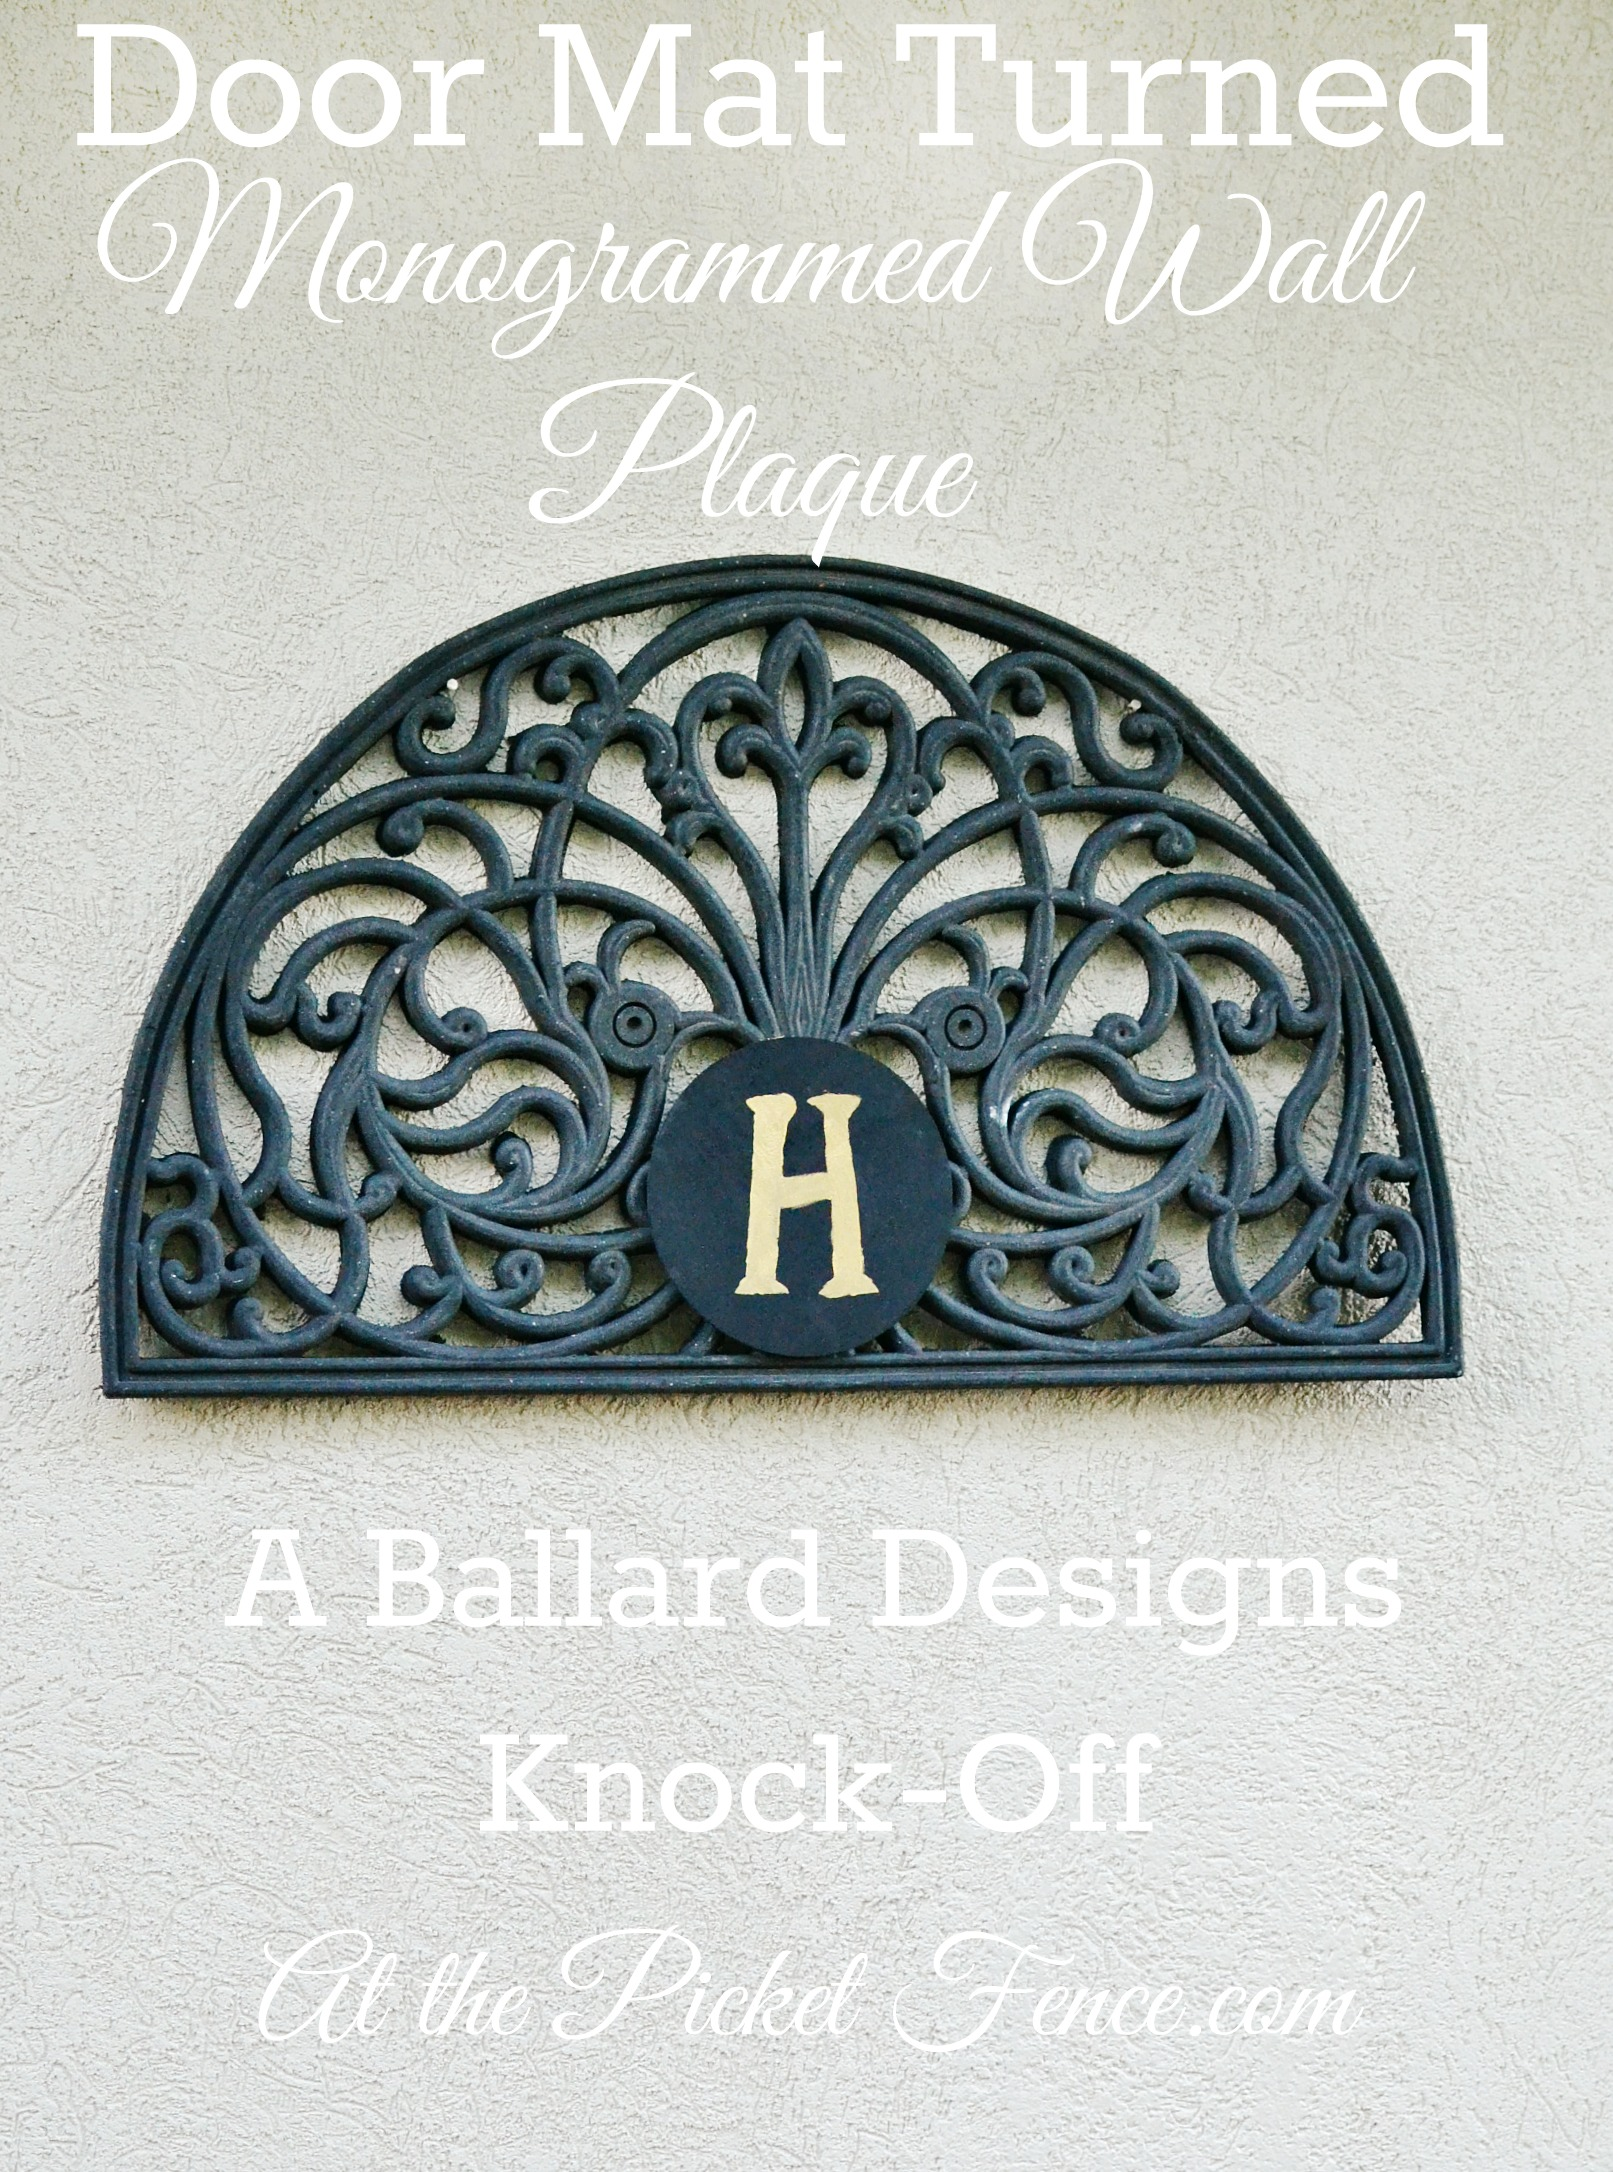 Ballard Designs Monogrammed Wall Plaque Knock-Off